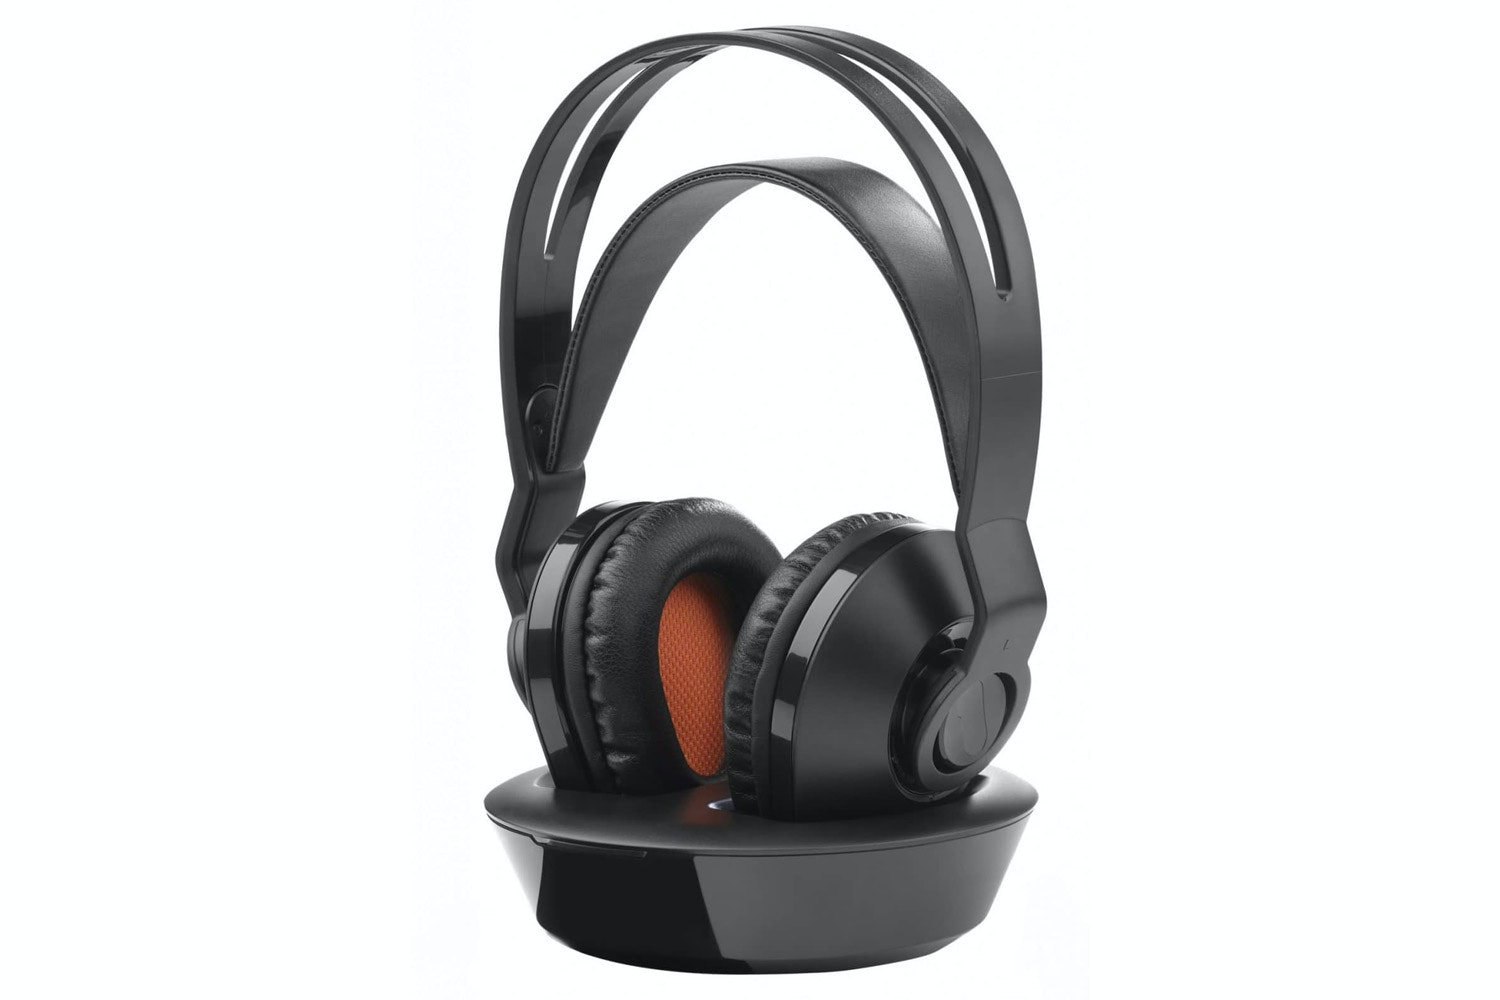 One For All Wireless TV Headphones